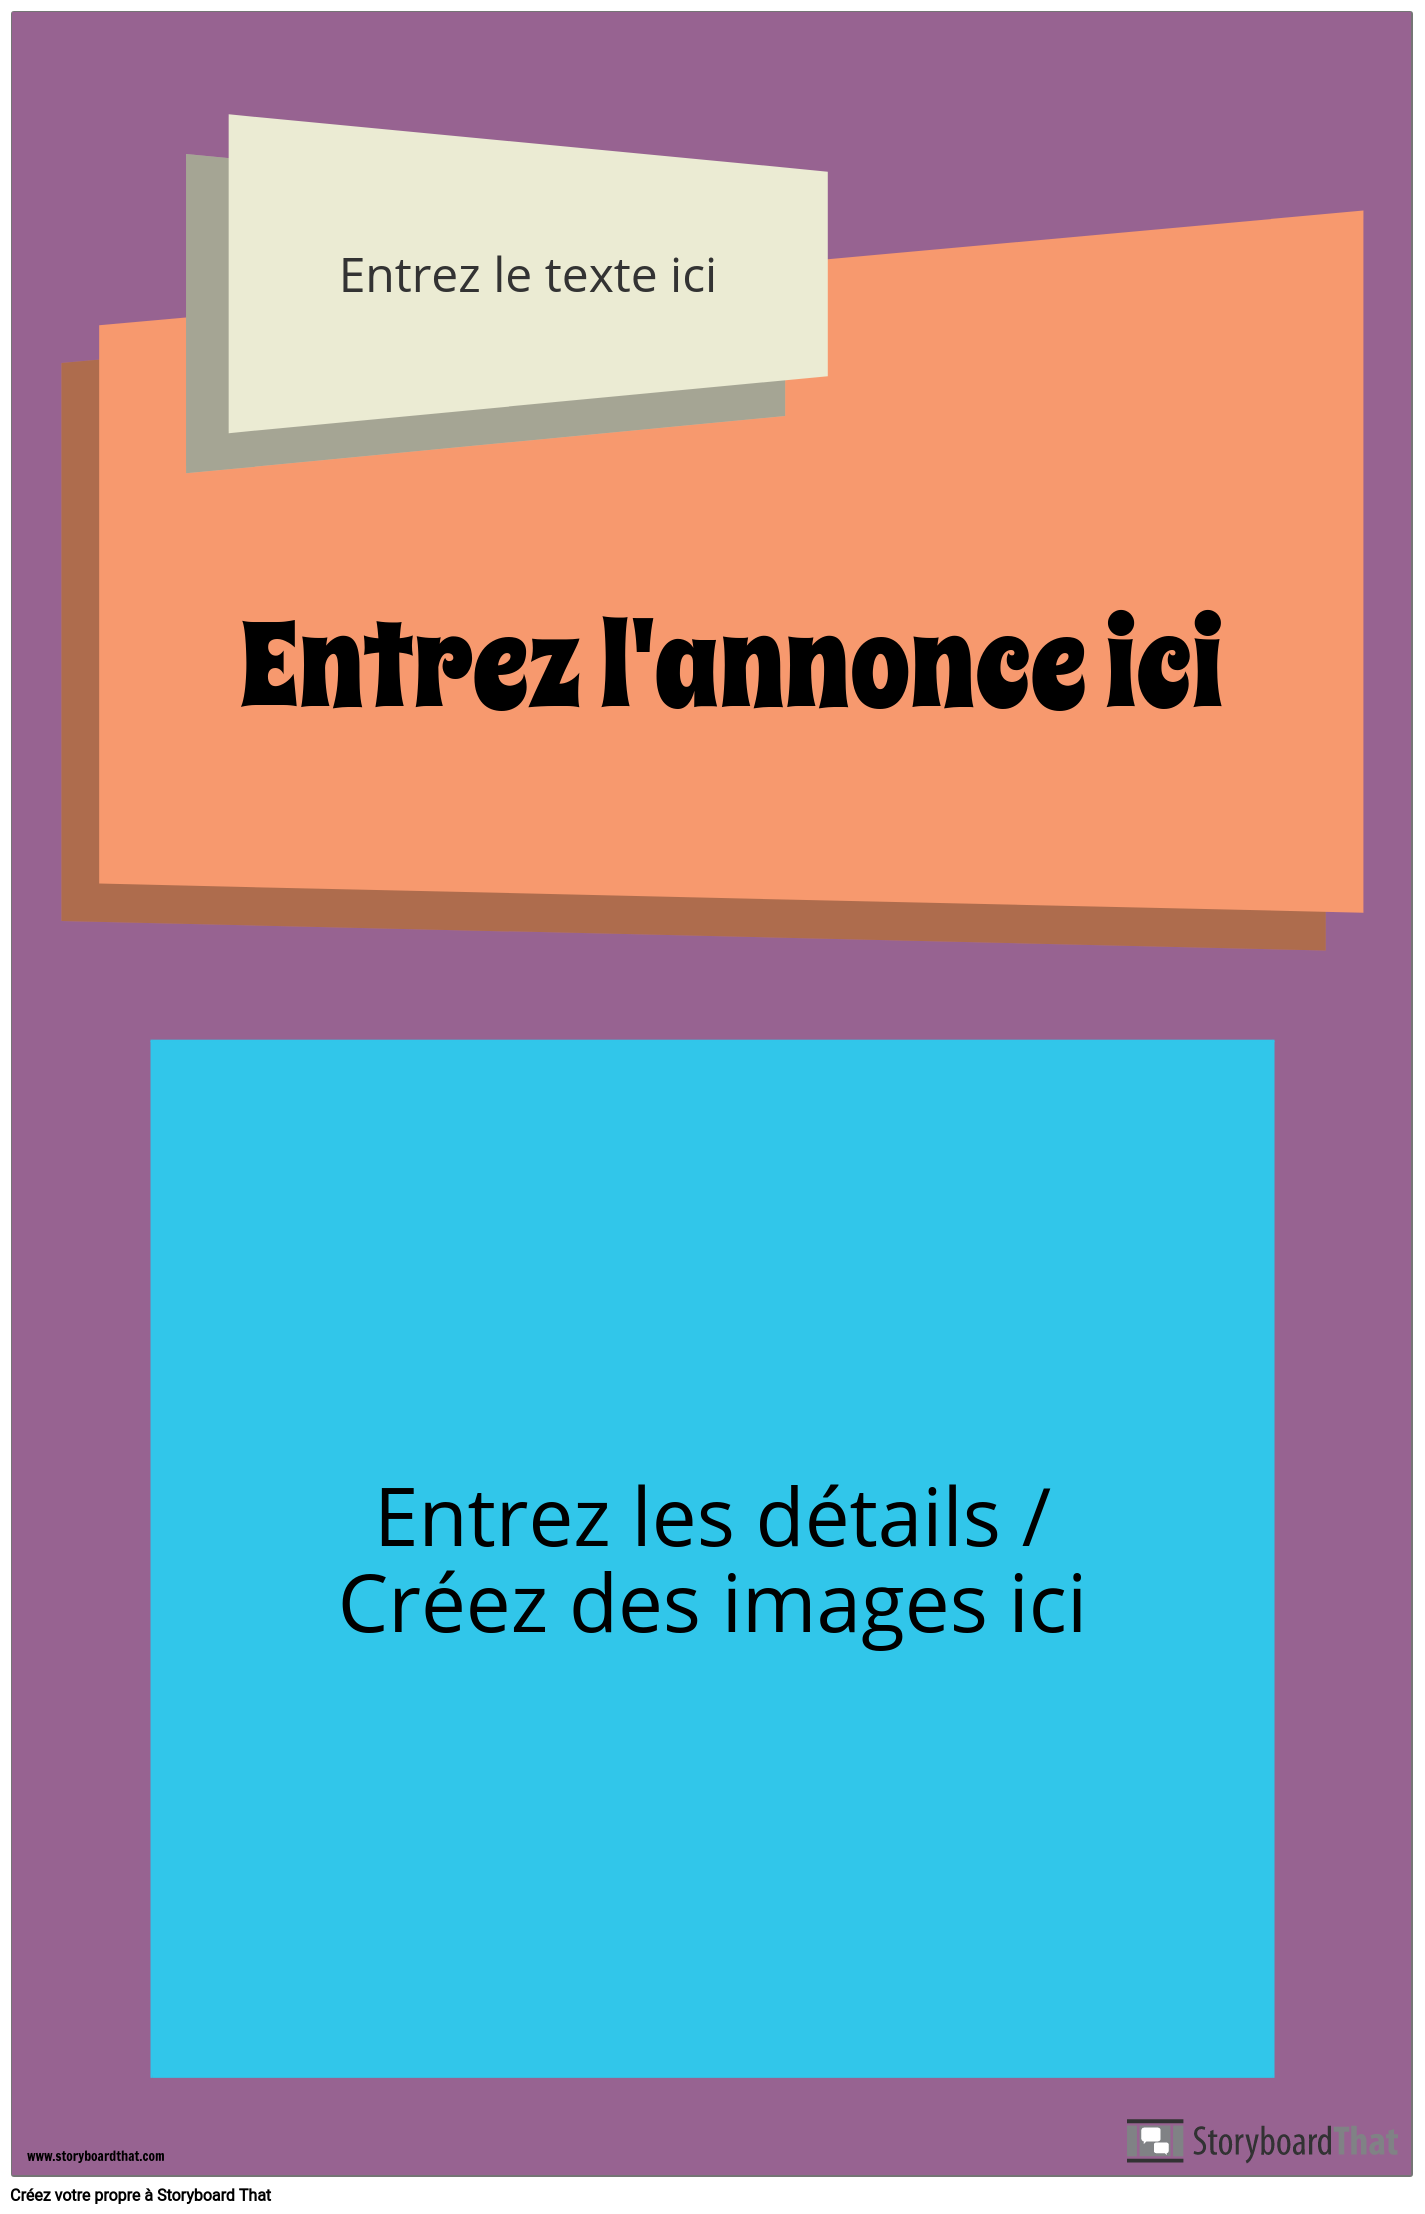 Affiche D'annonce Groovy